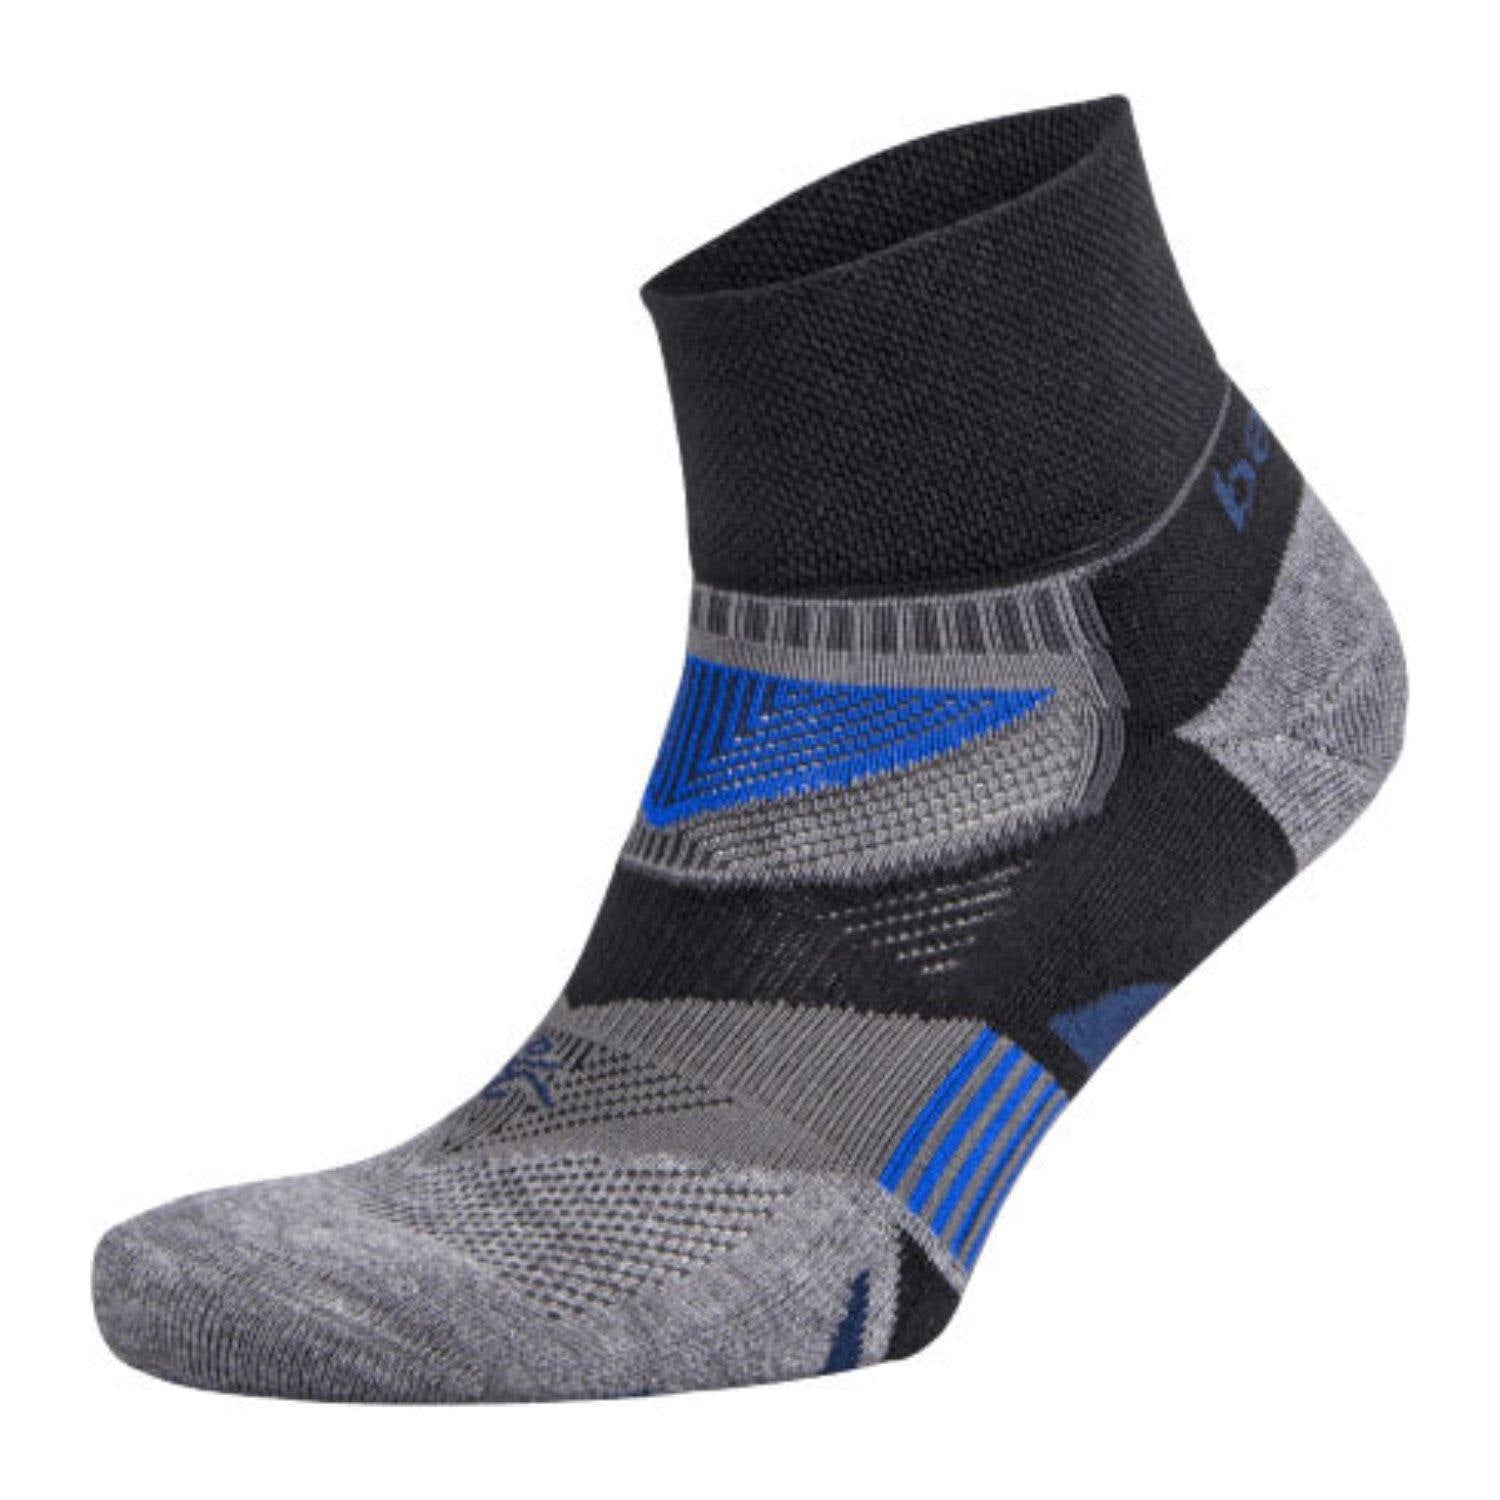 Balega Enduro V-tech Quarter Crew Socks - Black/Grey